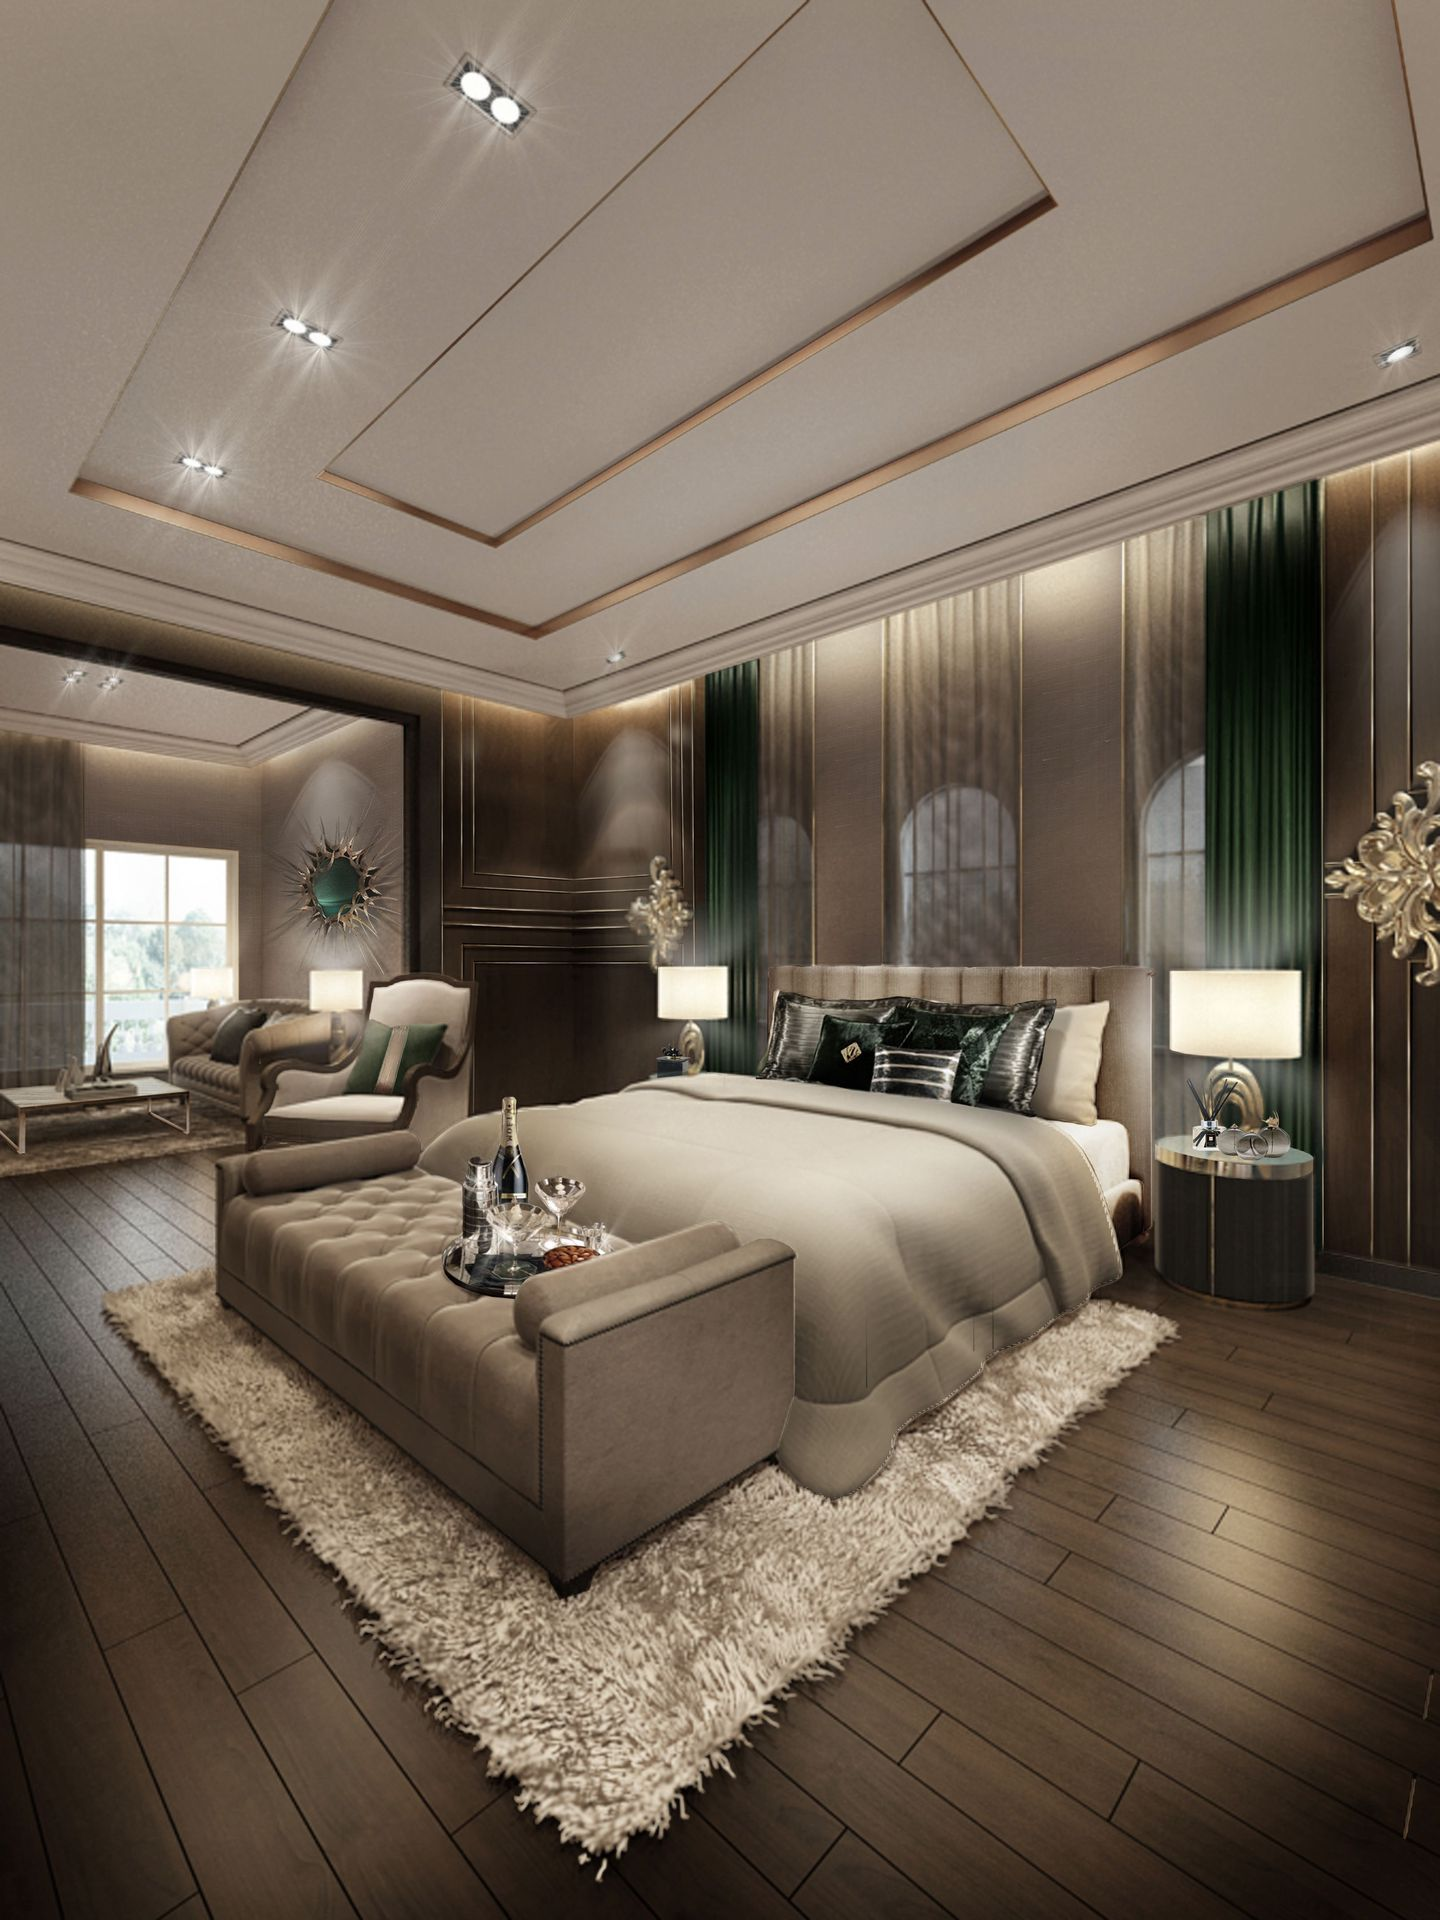 Im An Army In 2021 Luxurious Bedrooms Modern Bedroom Design Modern Luxury Bedroom Luxury bts room photo